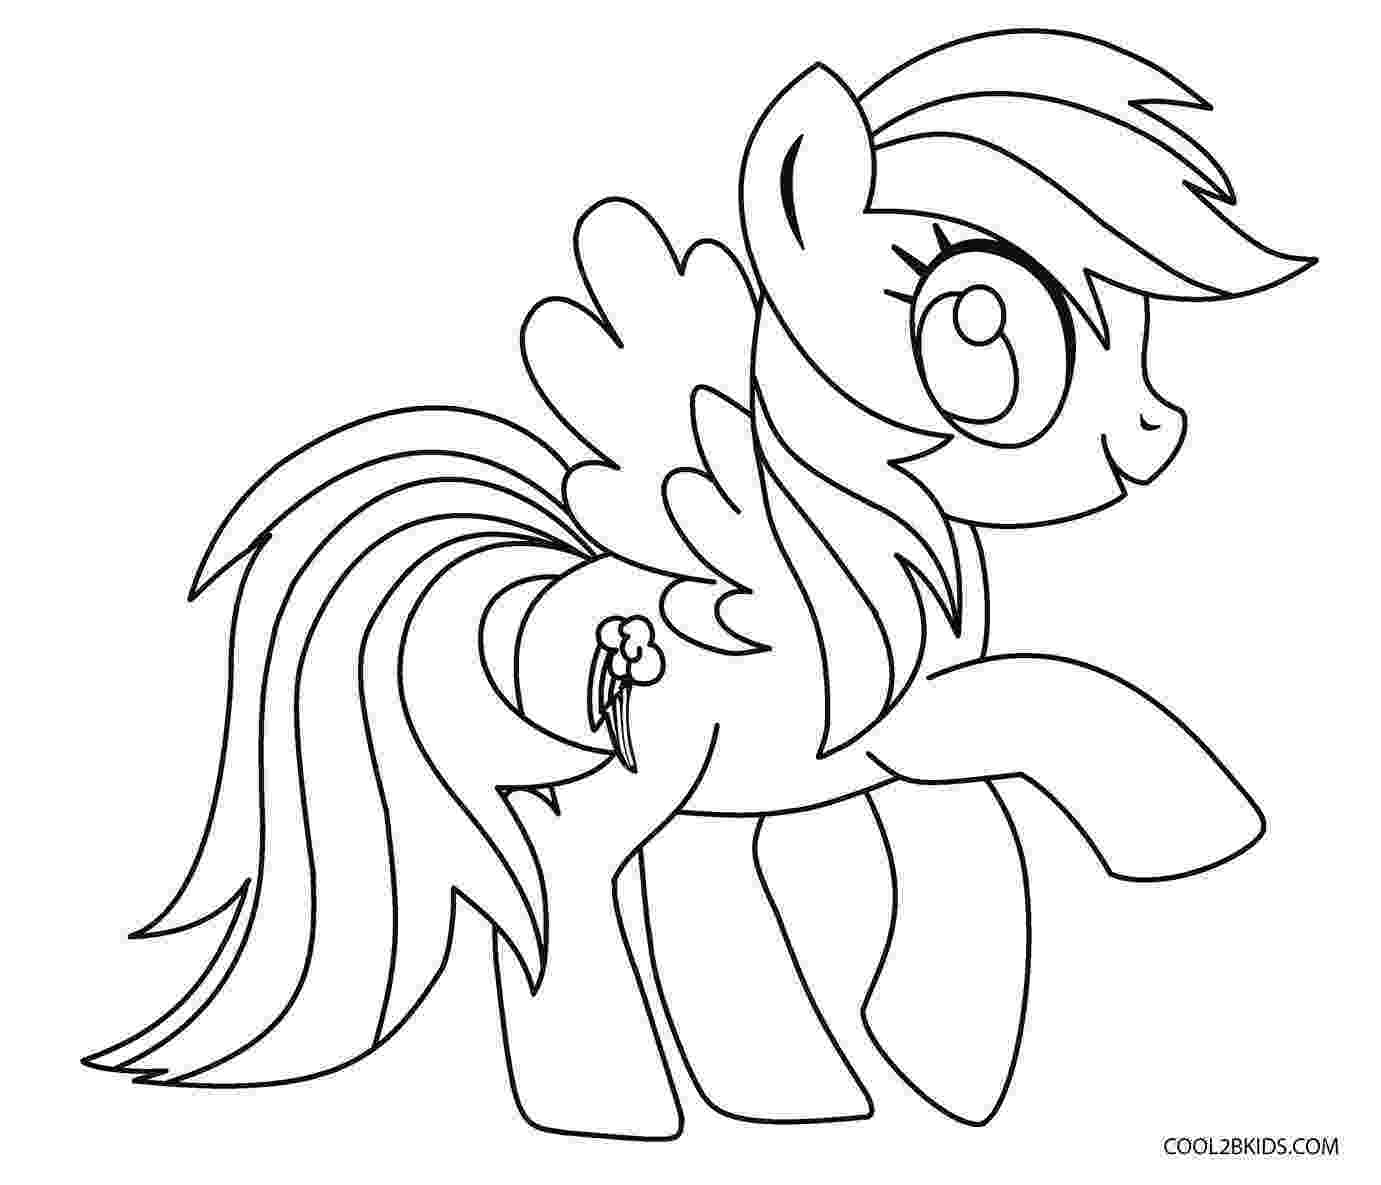 my little pony coloring sheets to print free printable my little pony coloring pages for kids pony sheets to coloring print my little